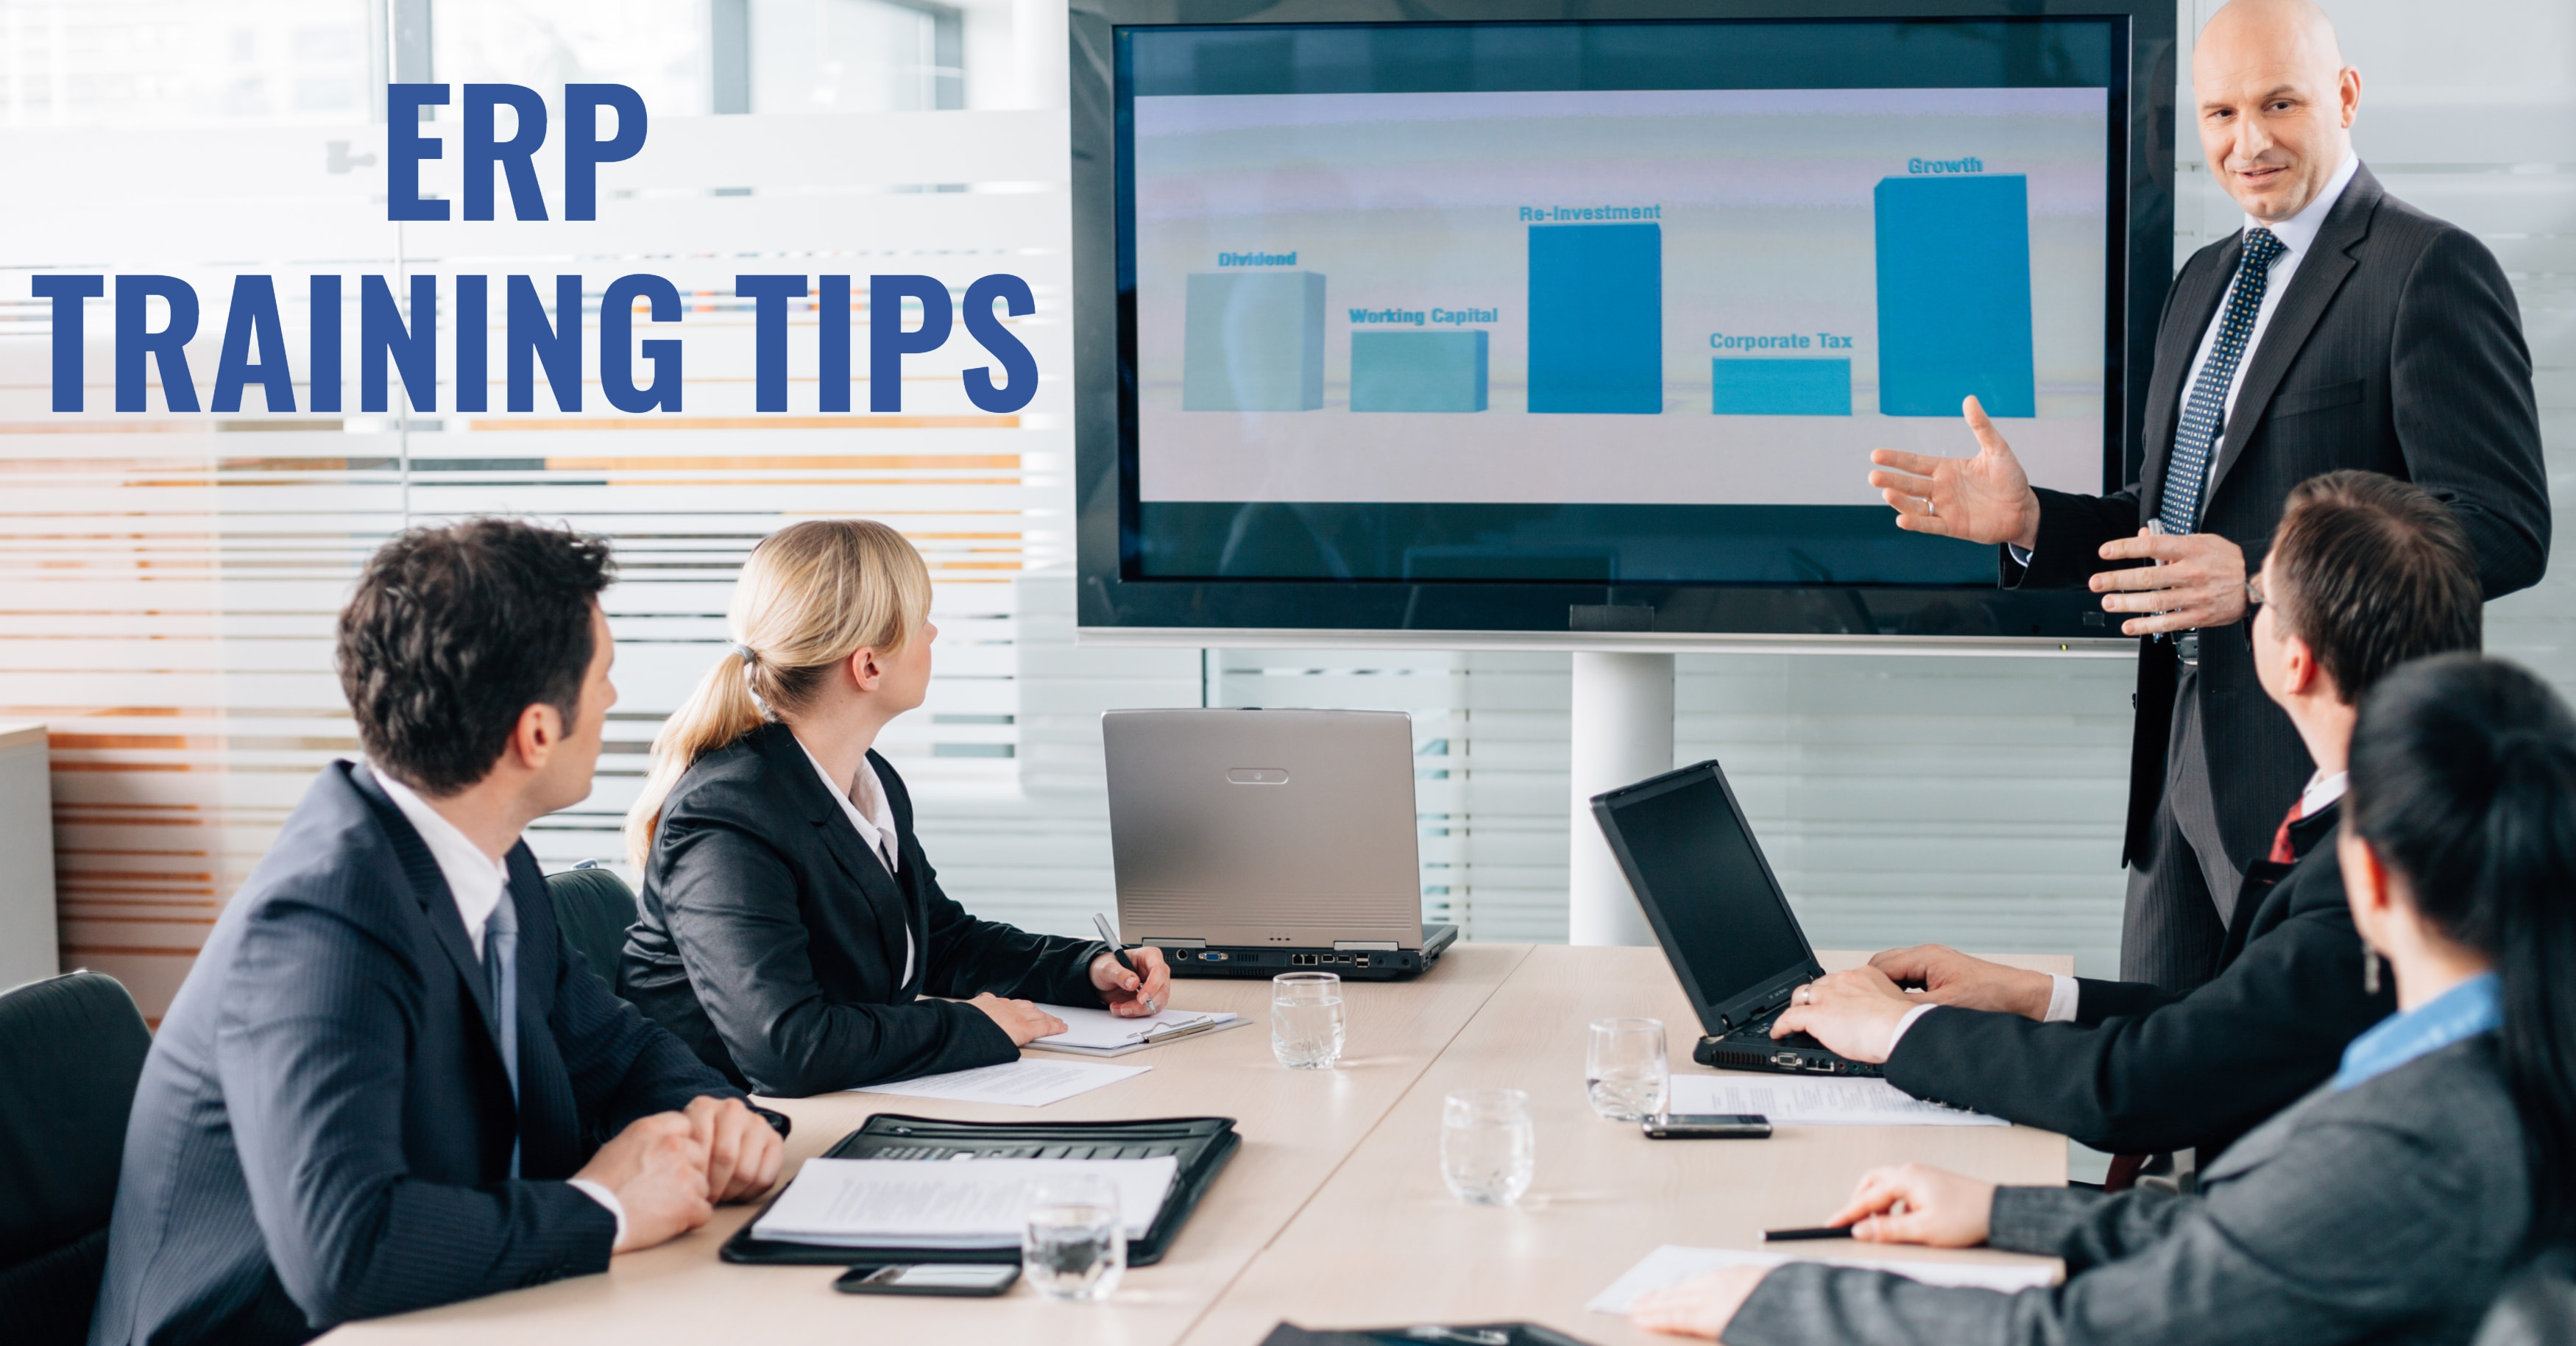 5 Tips for Robust ERP Training